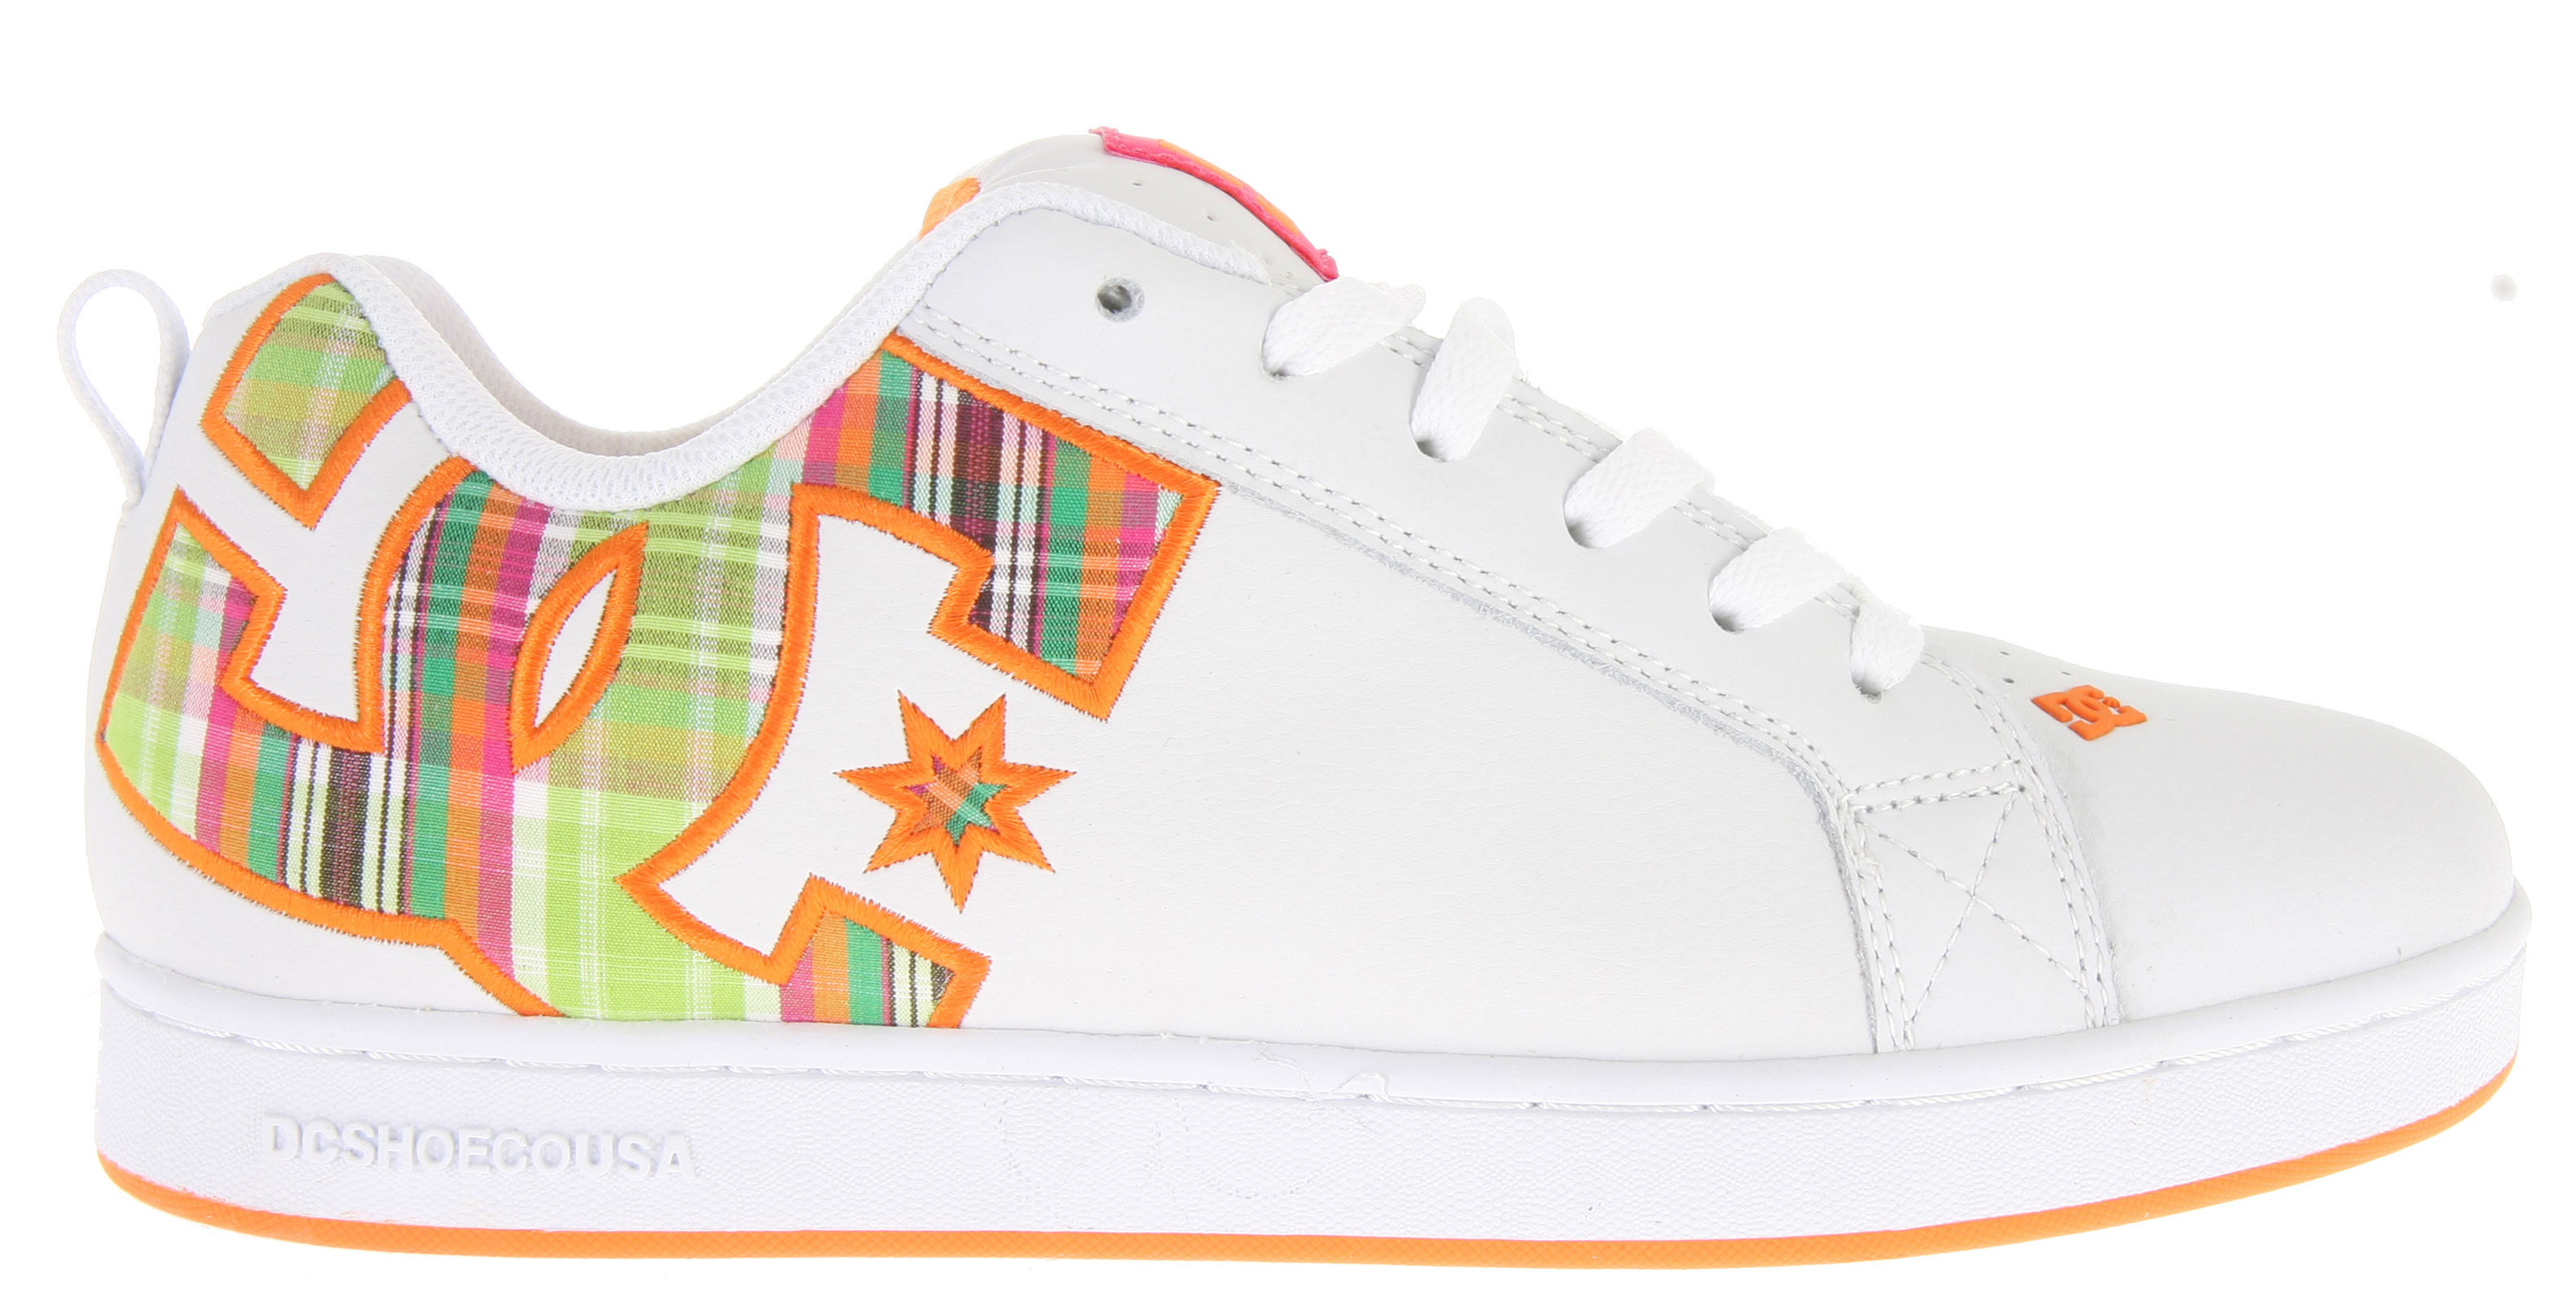 Skateboard DC Court Graffik SE Skate Shoes - $43.95